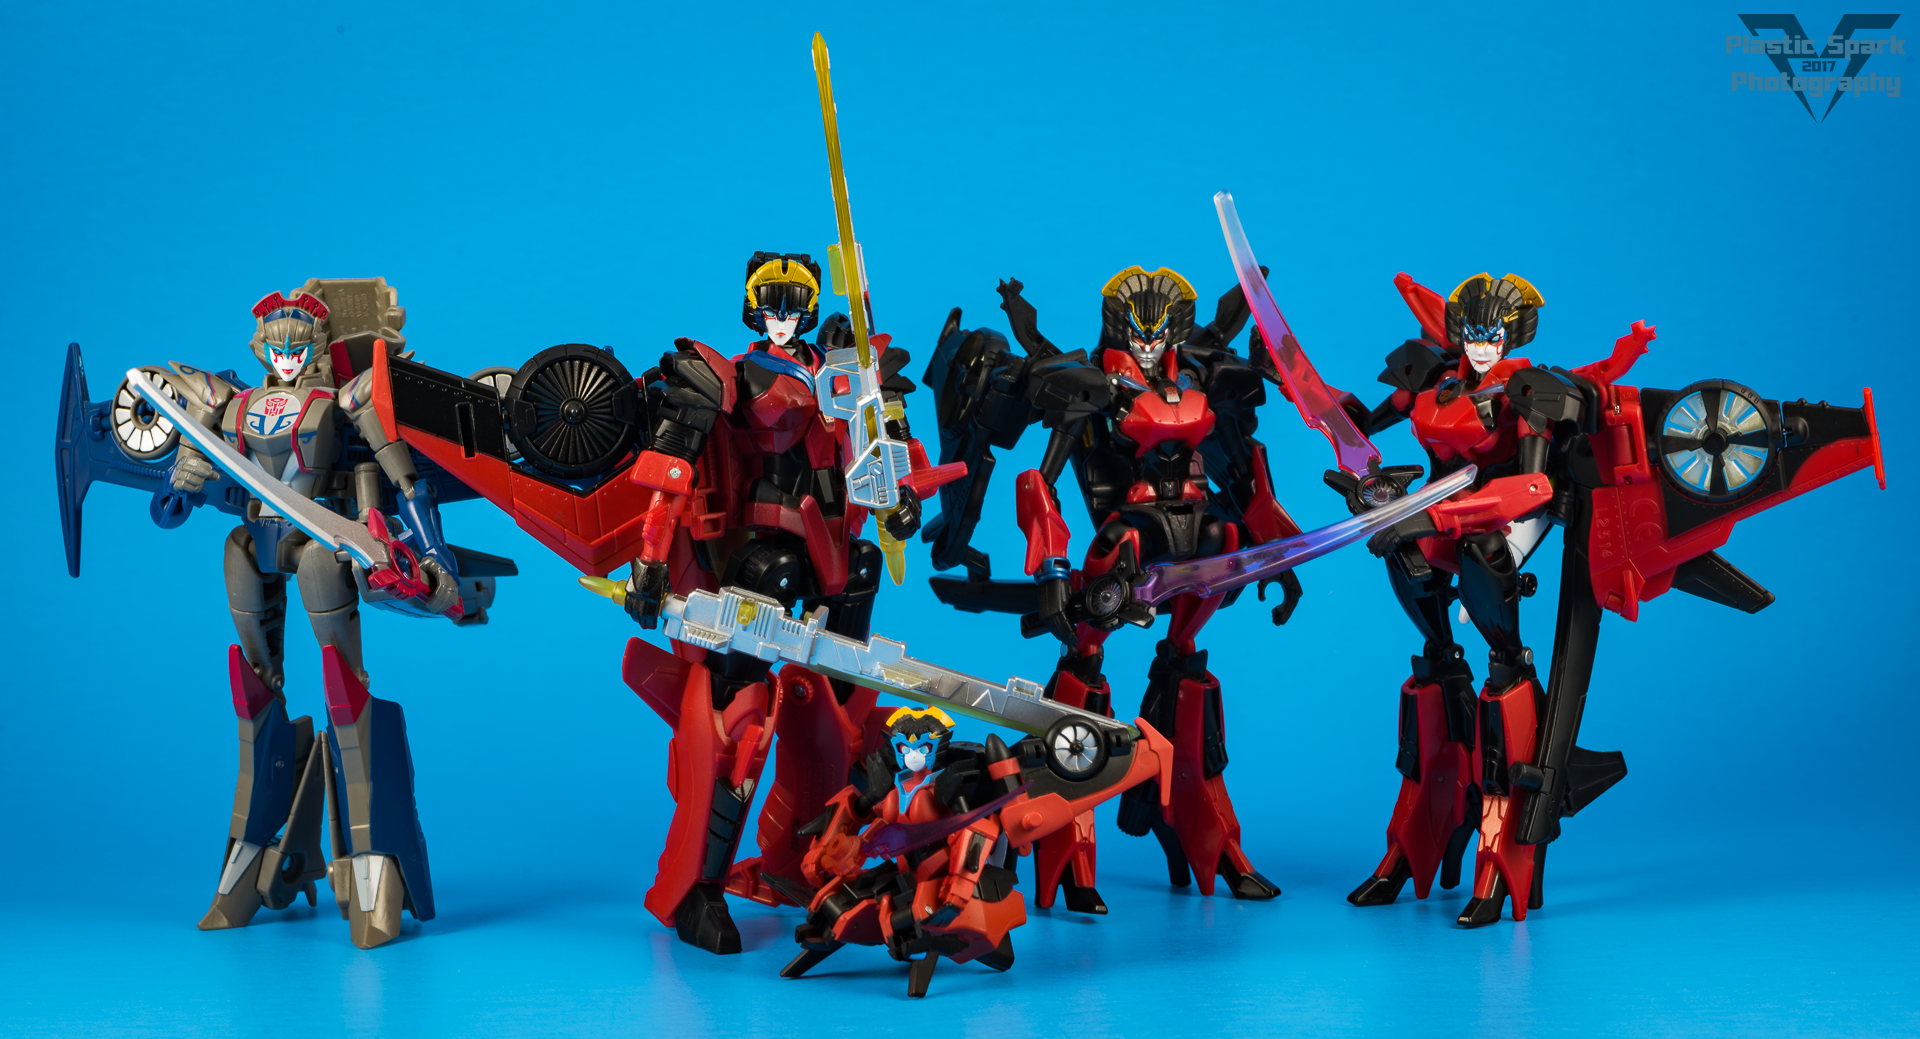 Titans-Return-Windblade-and-Scorchfire-(29-of-29).png